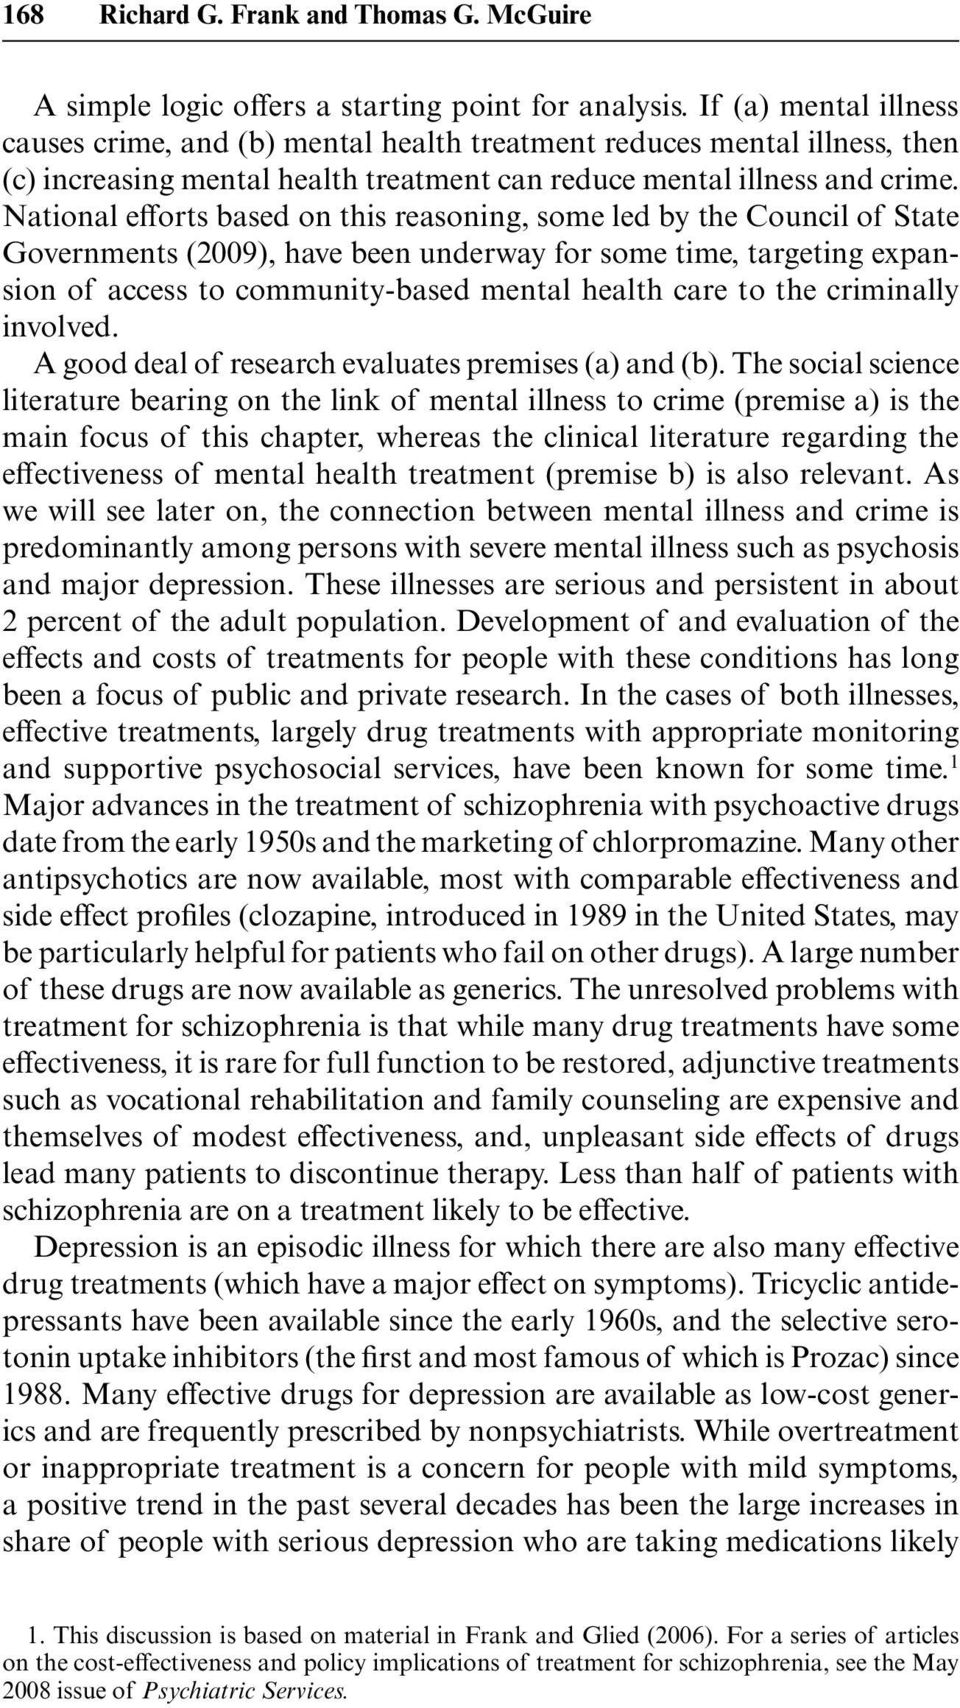 National efforts based on this reasoning, some led by the Council of State Governments (2009), have been underway for some time, targeting expansion of access to community- based mental health care